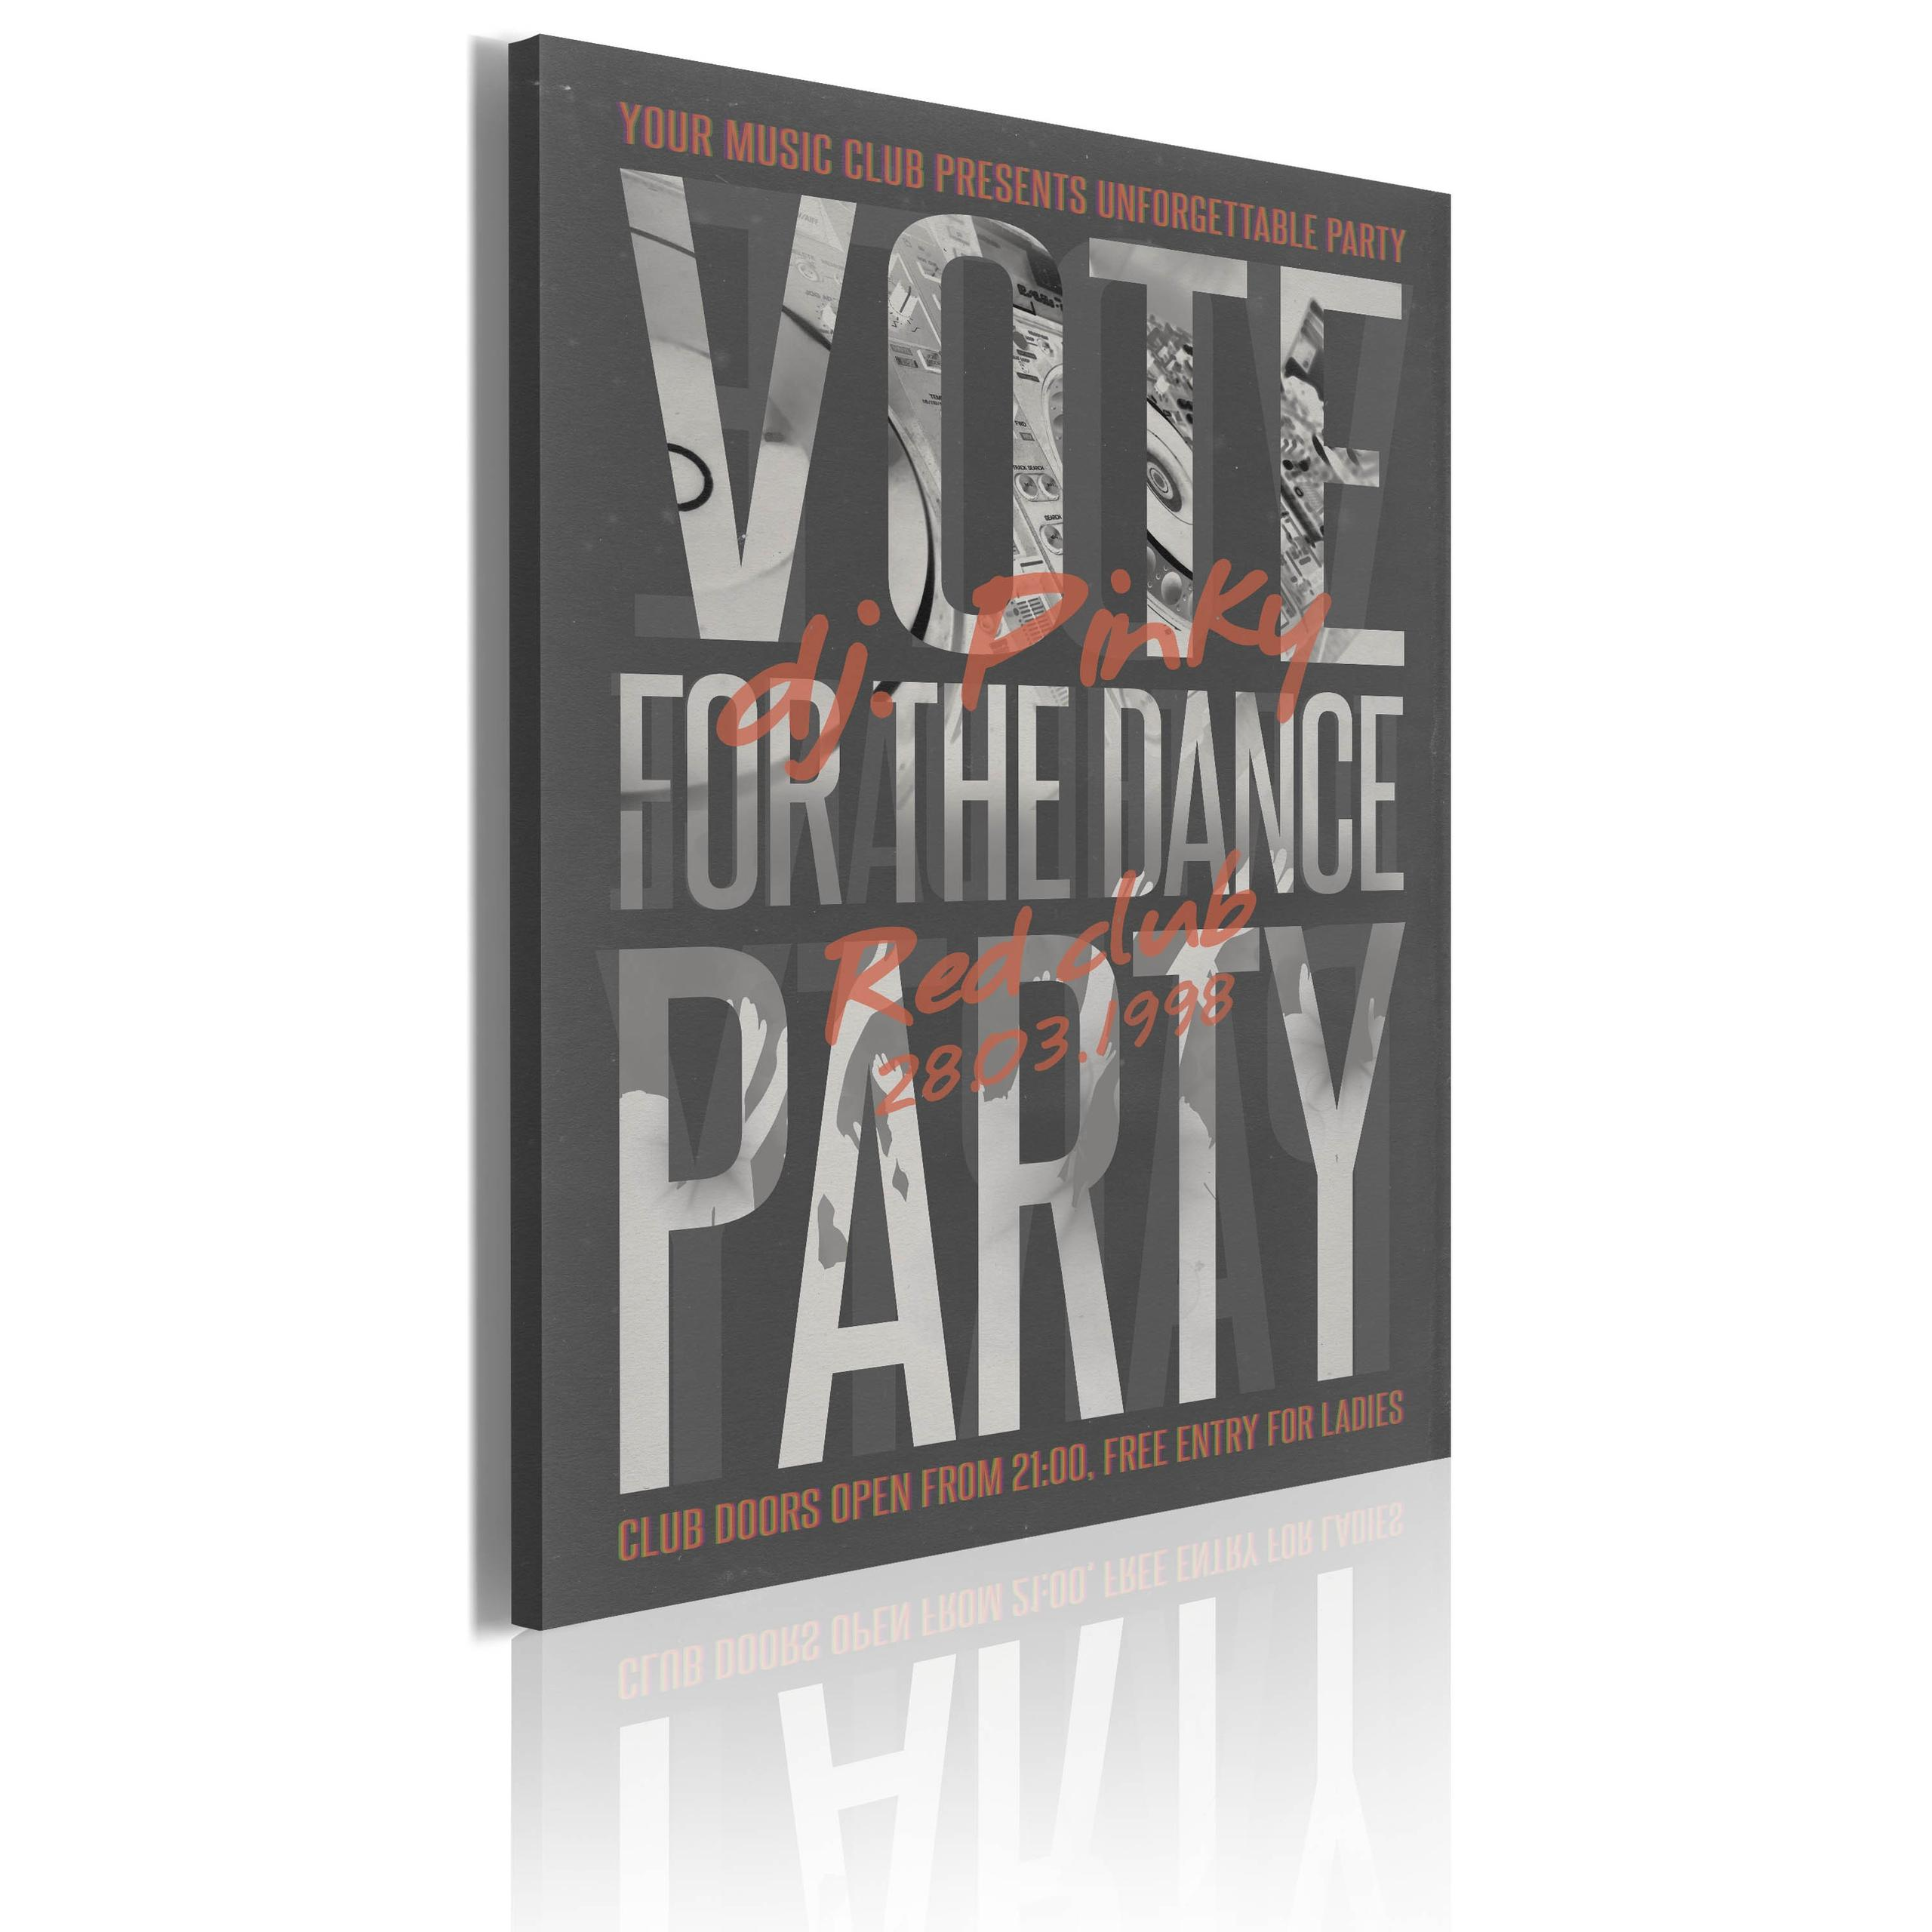 Quadro - Vote For The Dance Party! Erroi